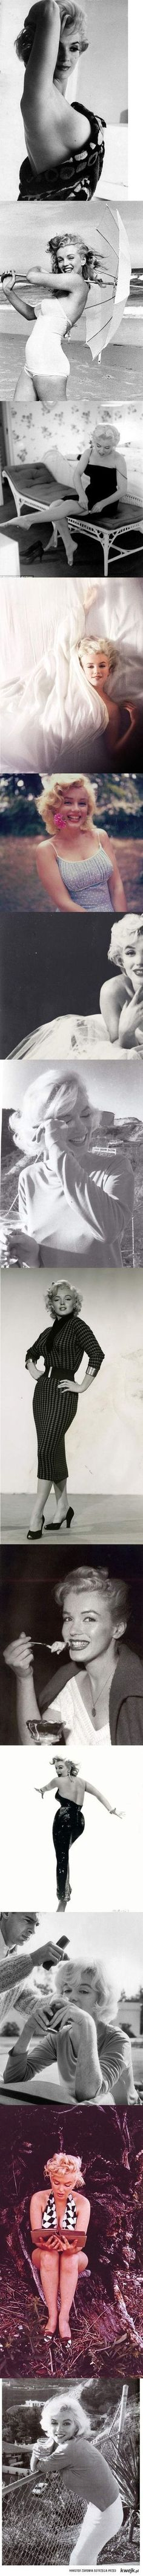 Marilyn Monroe (Norma jeane) I know everything there is to know❤ Divas, Classic Hollywood, Old Hollywood, Hollywood Glamour, Marilyn Monroe Photos, Actrices Hollywood, Norma Jeane, Jolie Photo, Classic Beauty